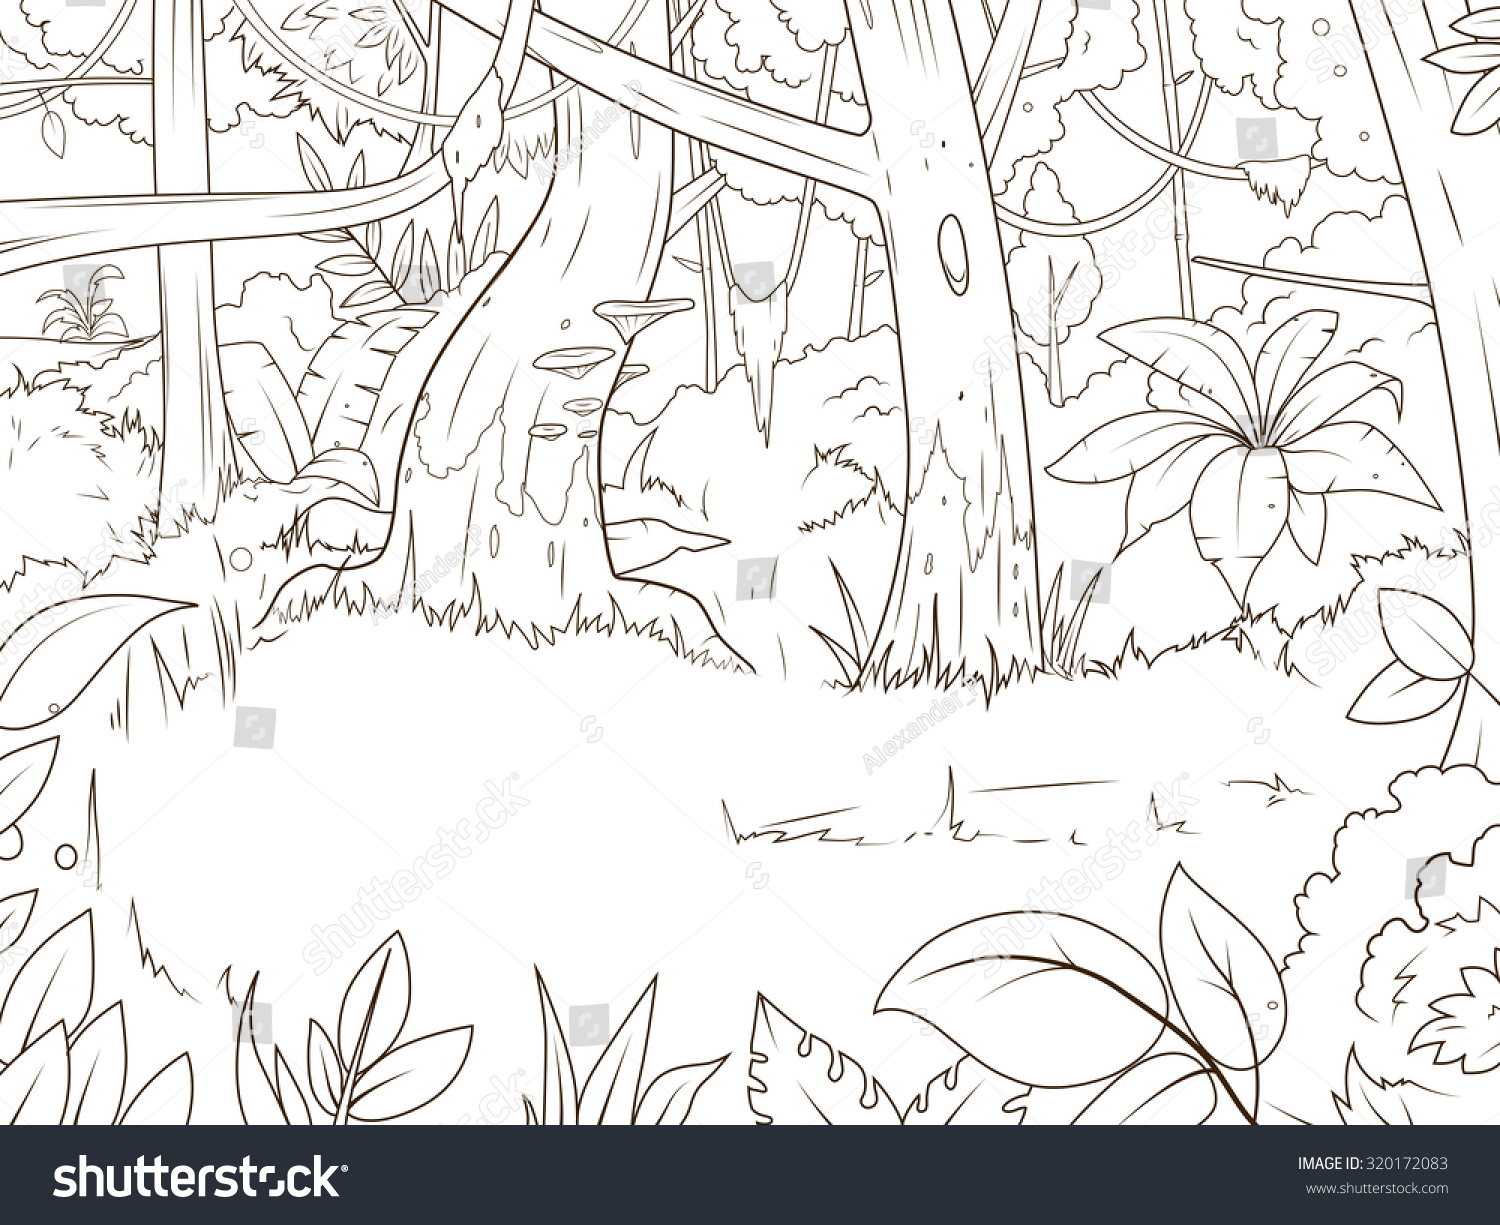 Jungle Forest Cartoon Coloring Book Vector Stock Vector 320172083